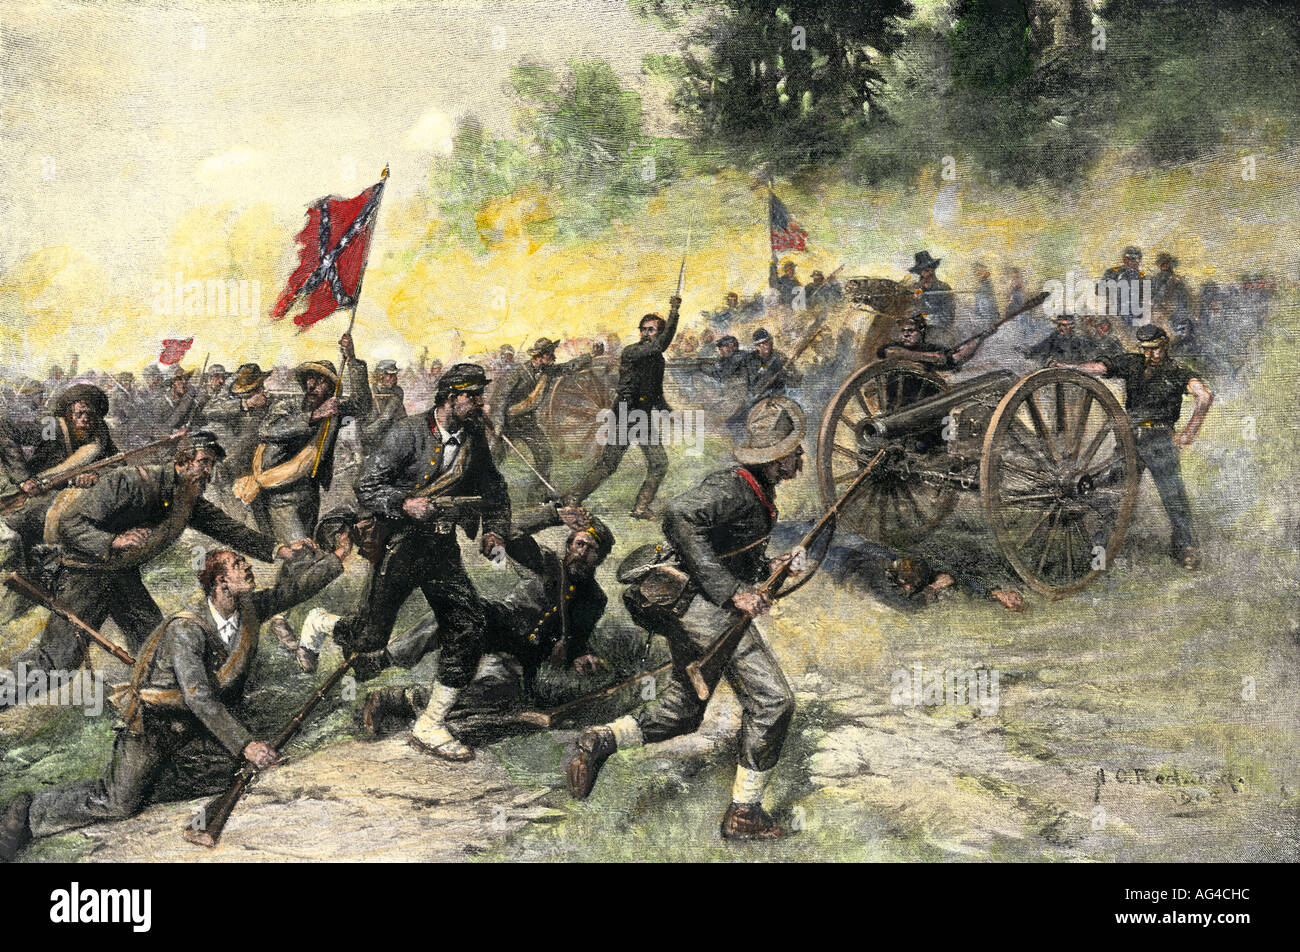 Confederate assault on Little Round Top held by the 20th Maine Regiment in the Battle of Gettysburg 1863. Hand-colored halftone of an illustration - Stock Image